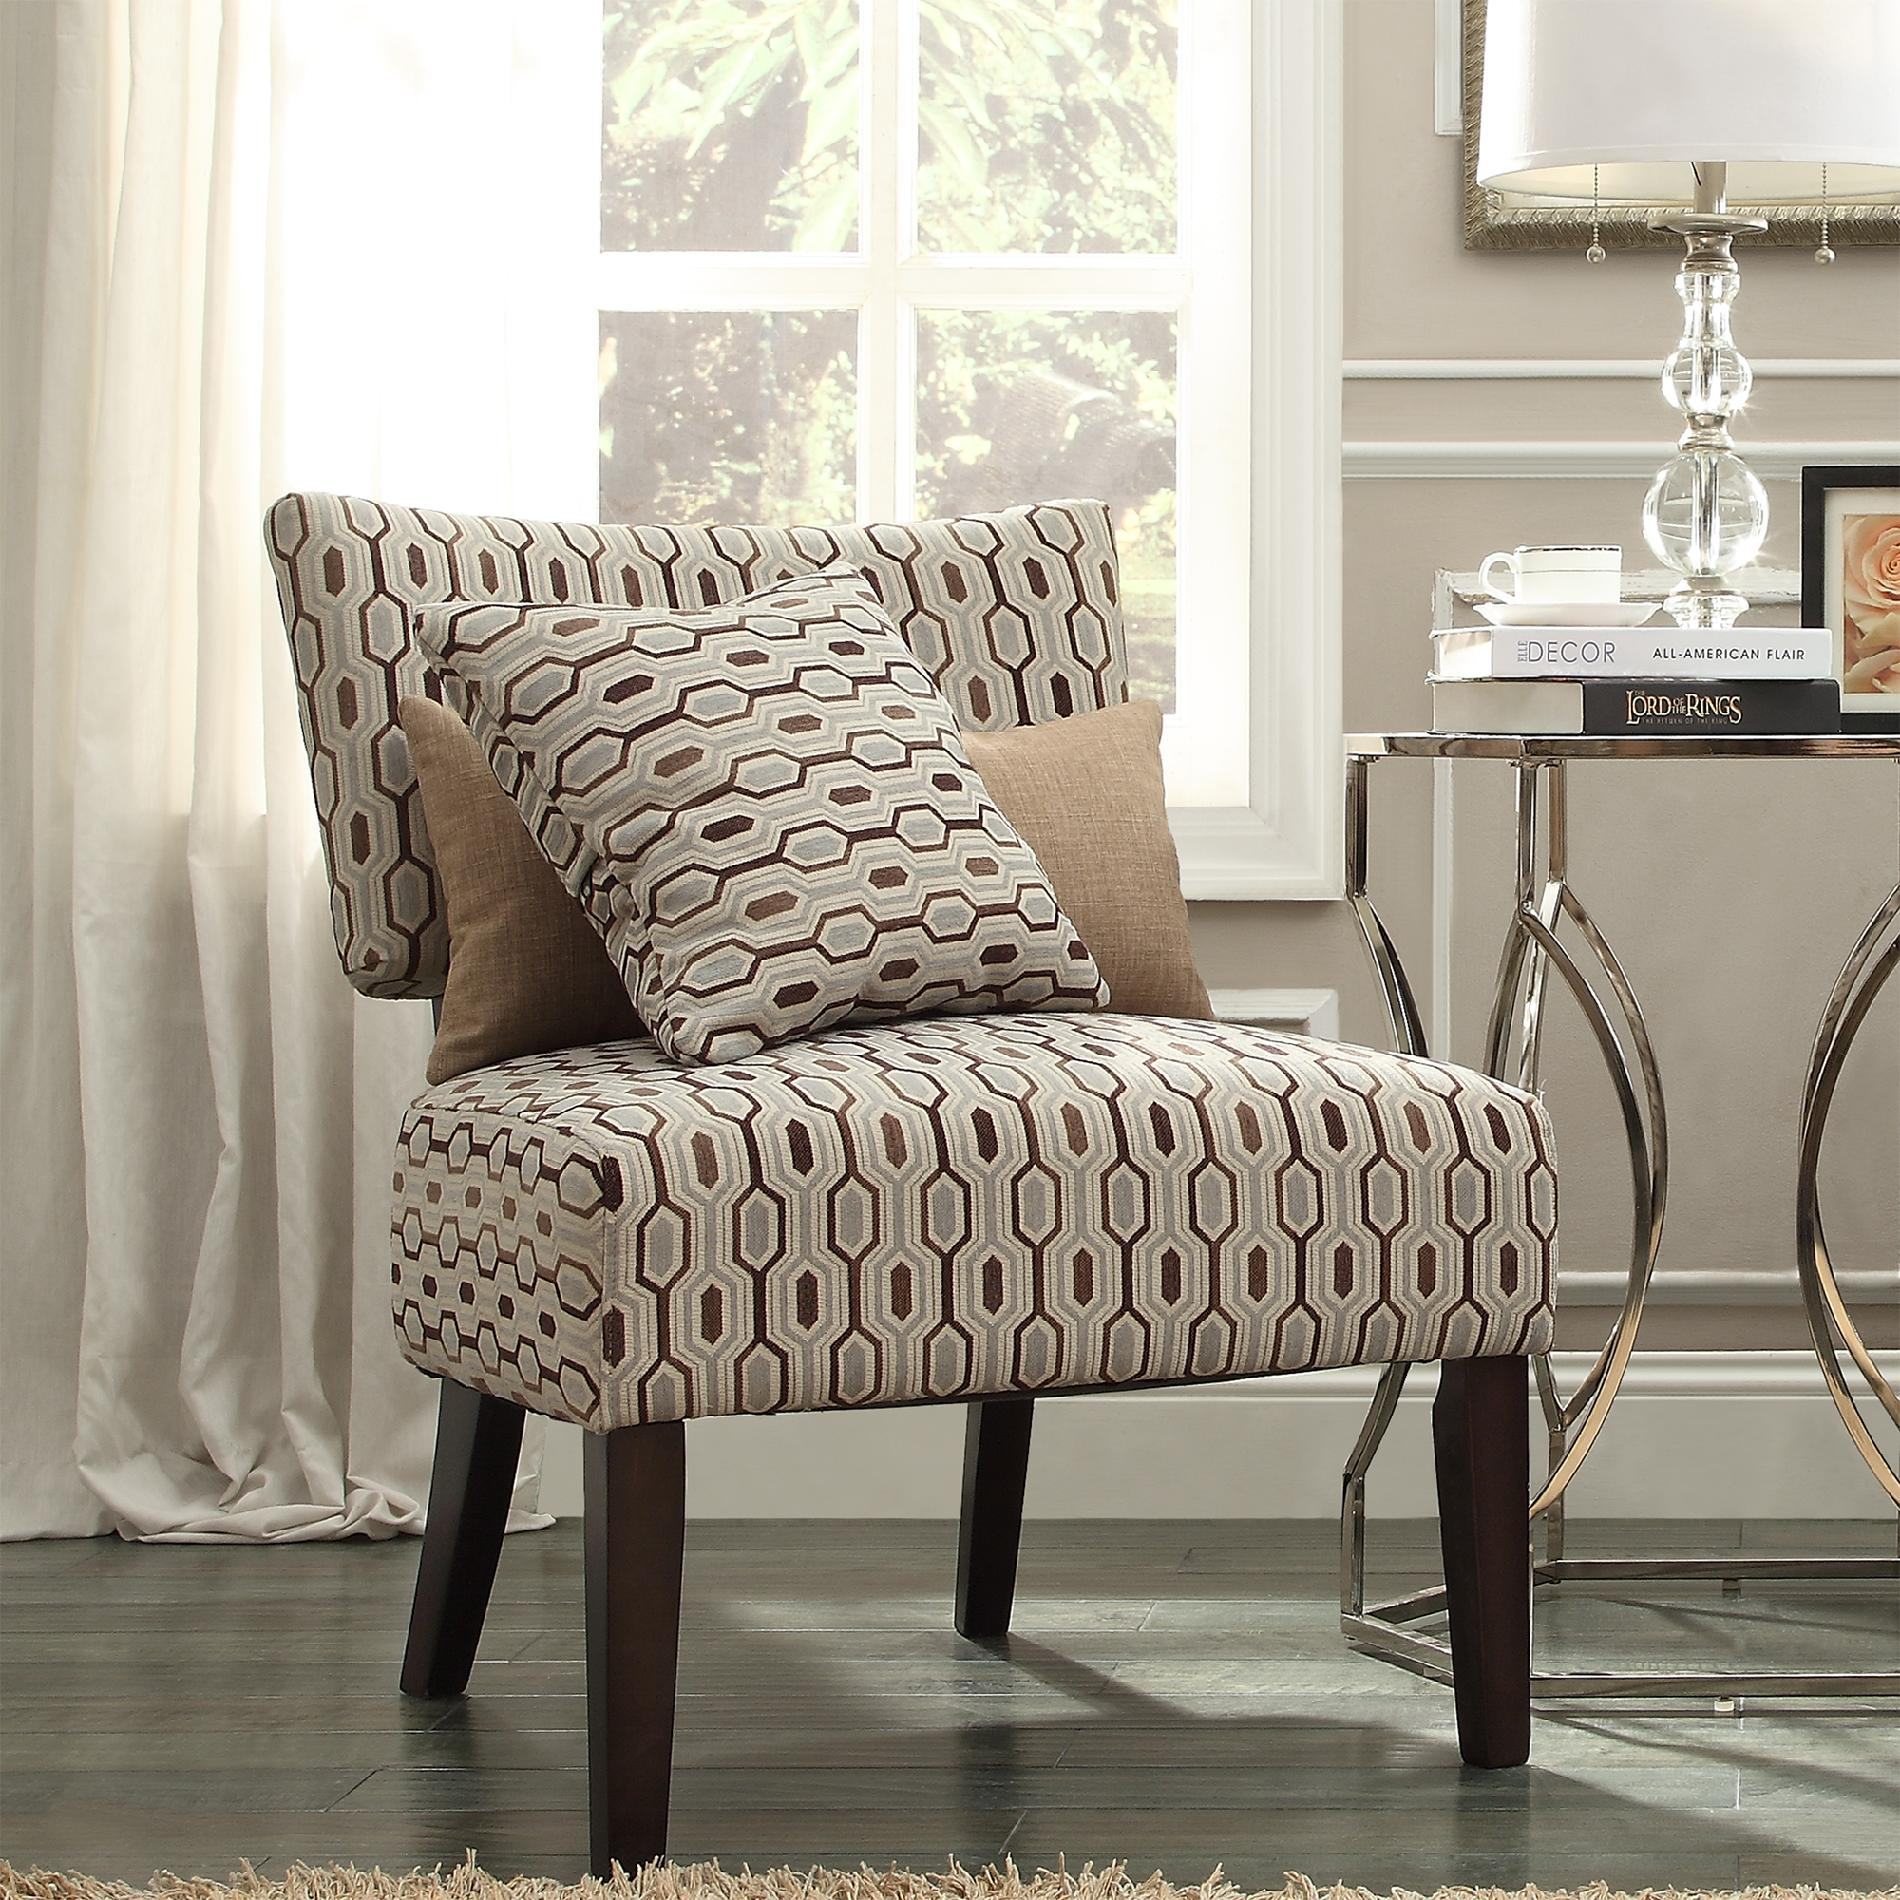 Armless Accent Chairs Oxford Creek Transitional Elliott Mocha Seafoam Honeycomb